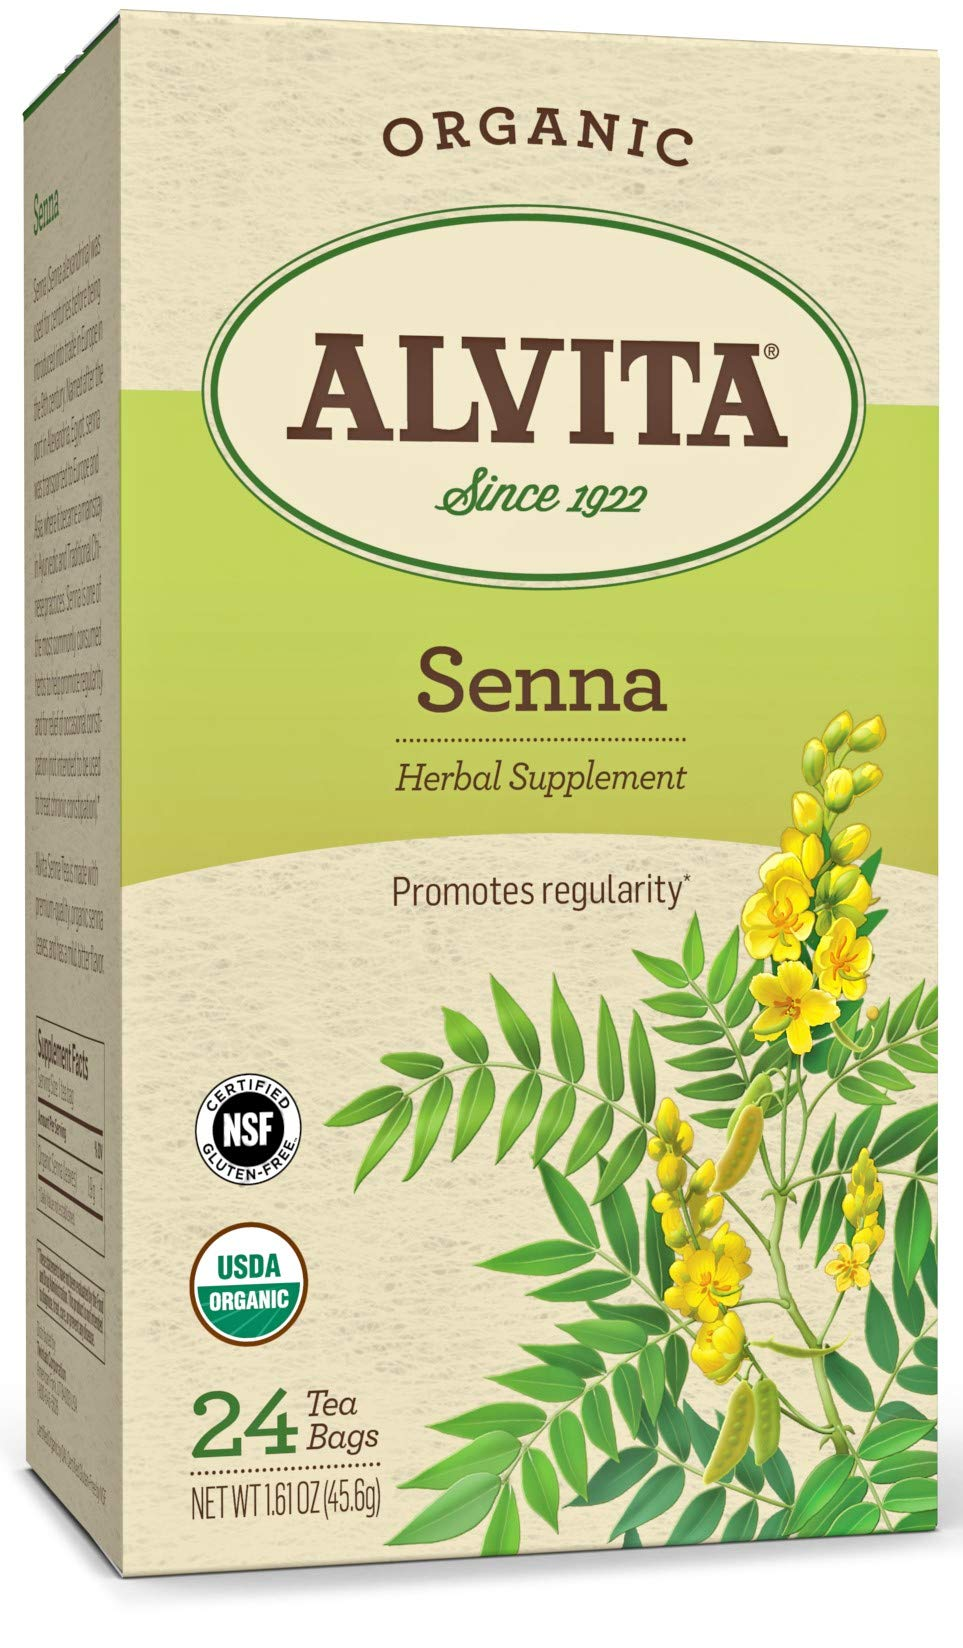 Alvita Organic Senna Herbal Tea - Made with Premium Quality Organic Senna Leaves, And A Mild Bitter Flavor, 24 Tea Bags